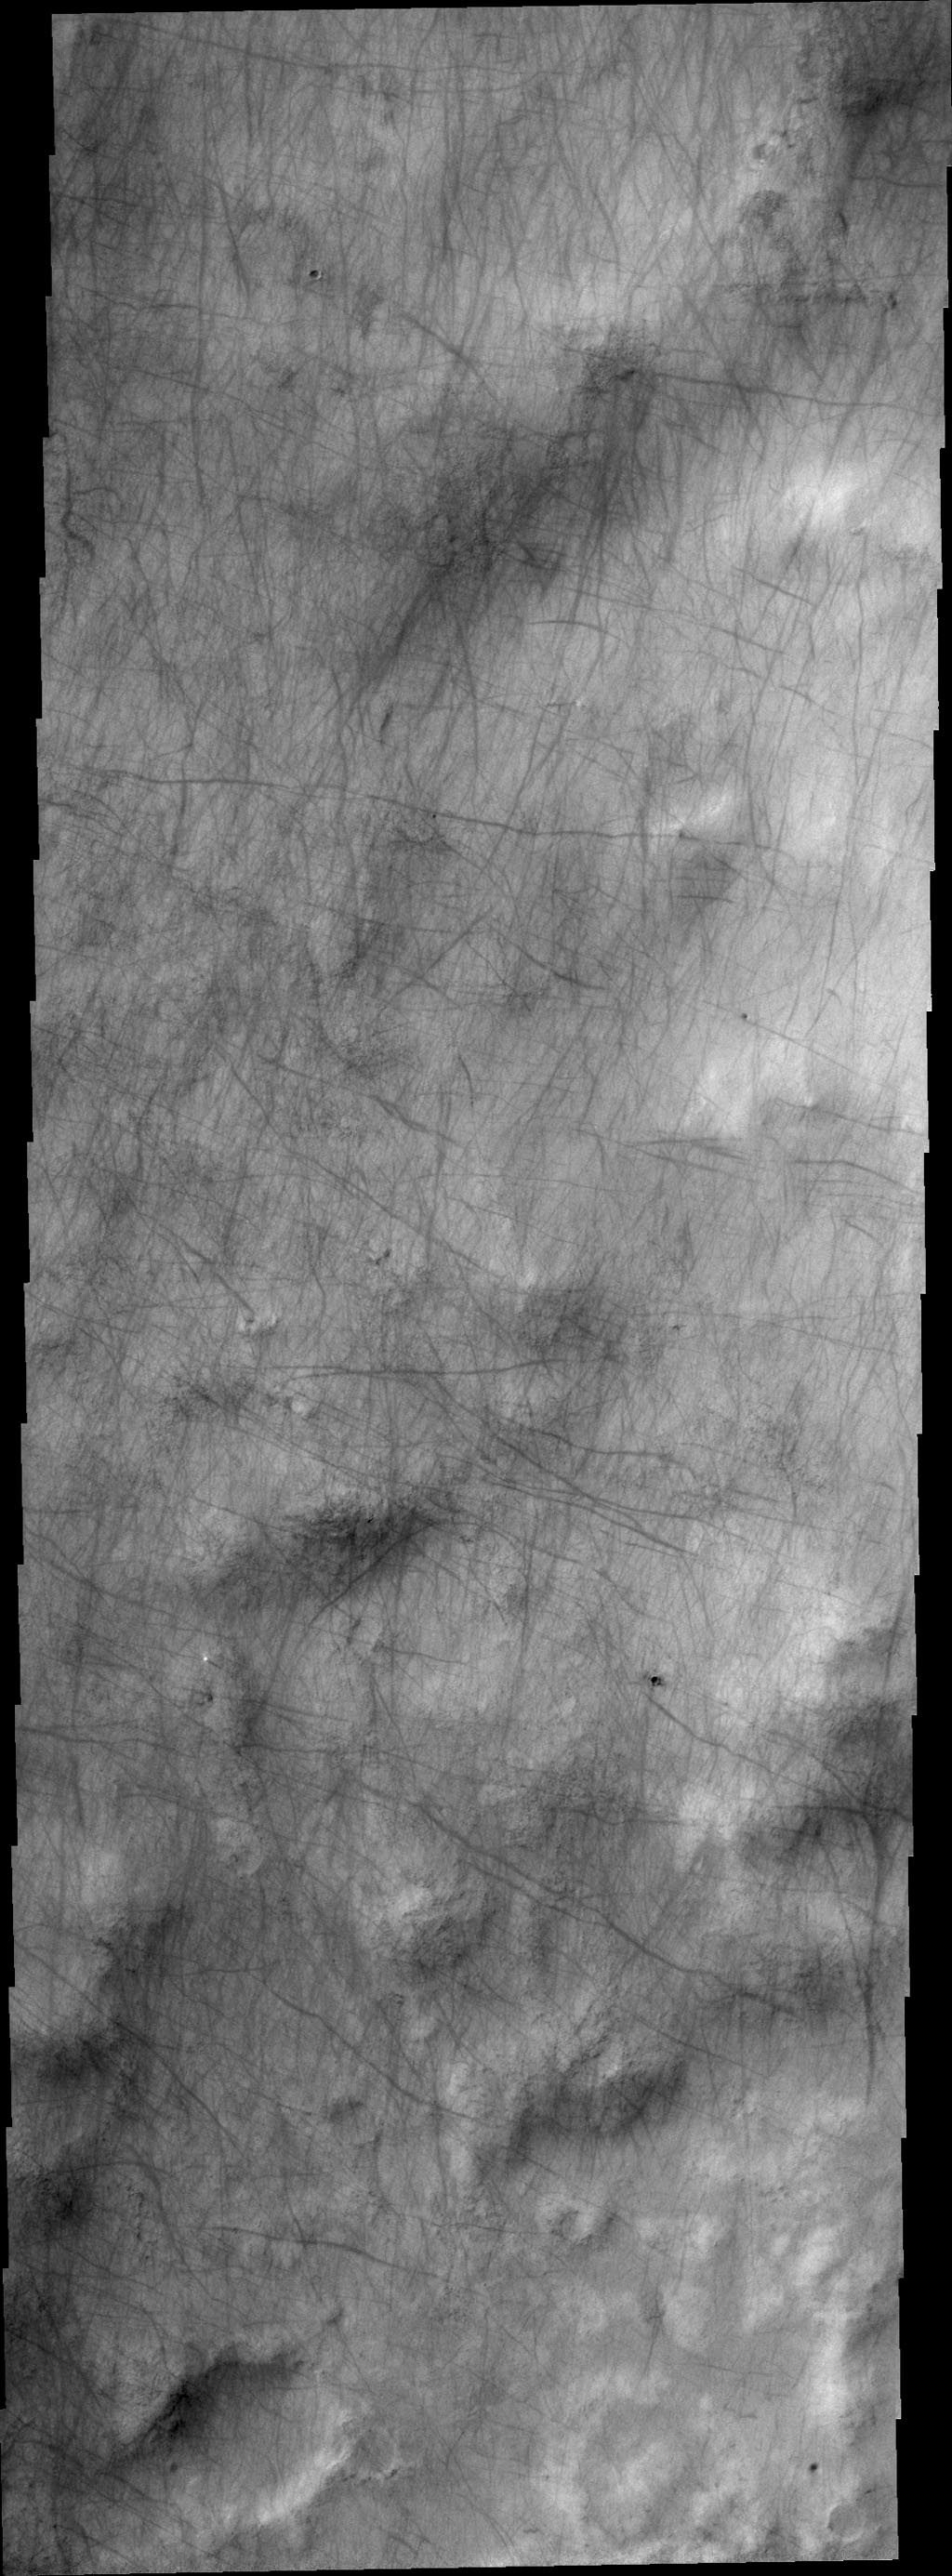 Dust devil tracks criss-cross the surface in this image captured by NASA's 2001 Mars Odyssey spacecraft.